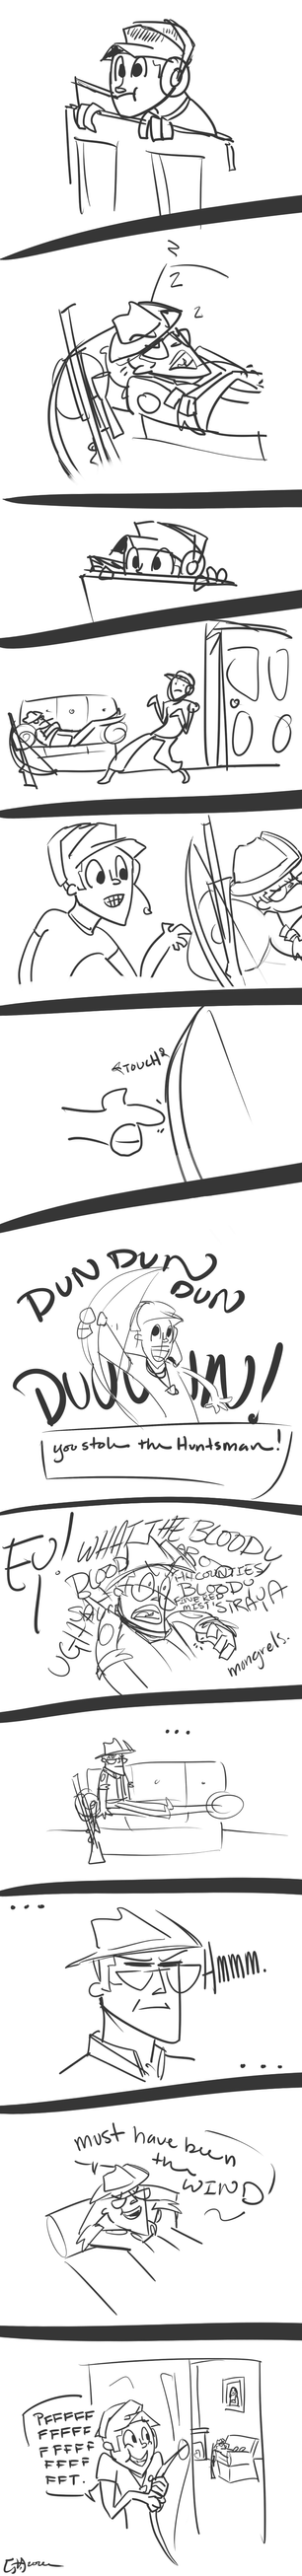 Death of an Interior Pigeon - Page 1 (draft) by TheGreatHushpuppy